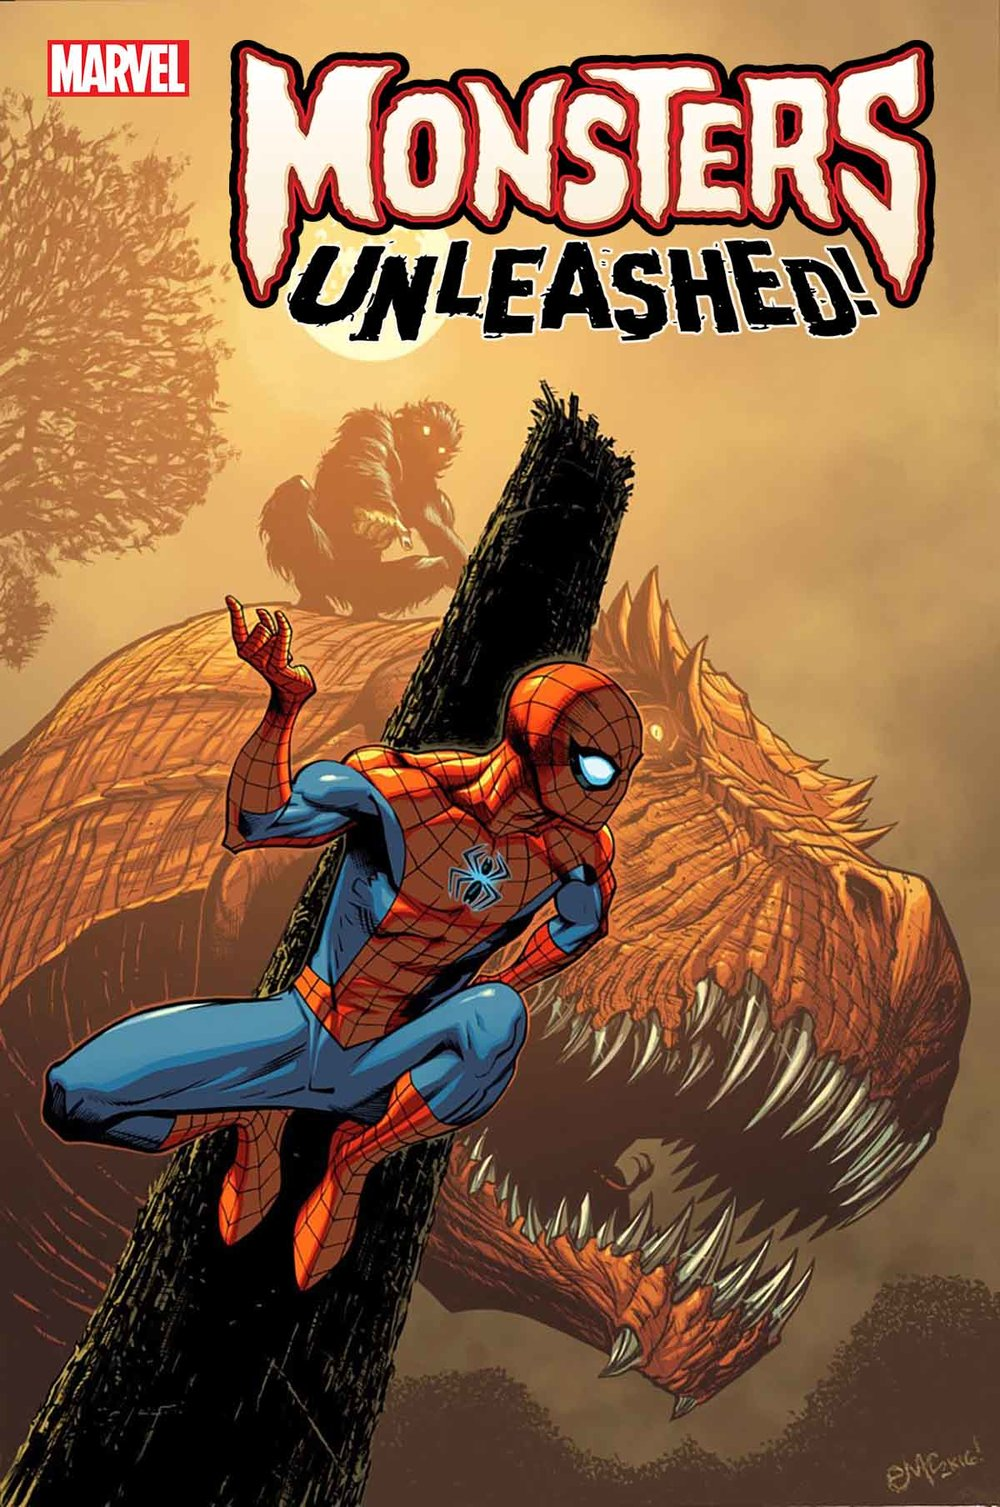 marvel-reveals-monsters-unleashed-variant-cover-art4